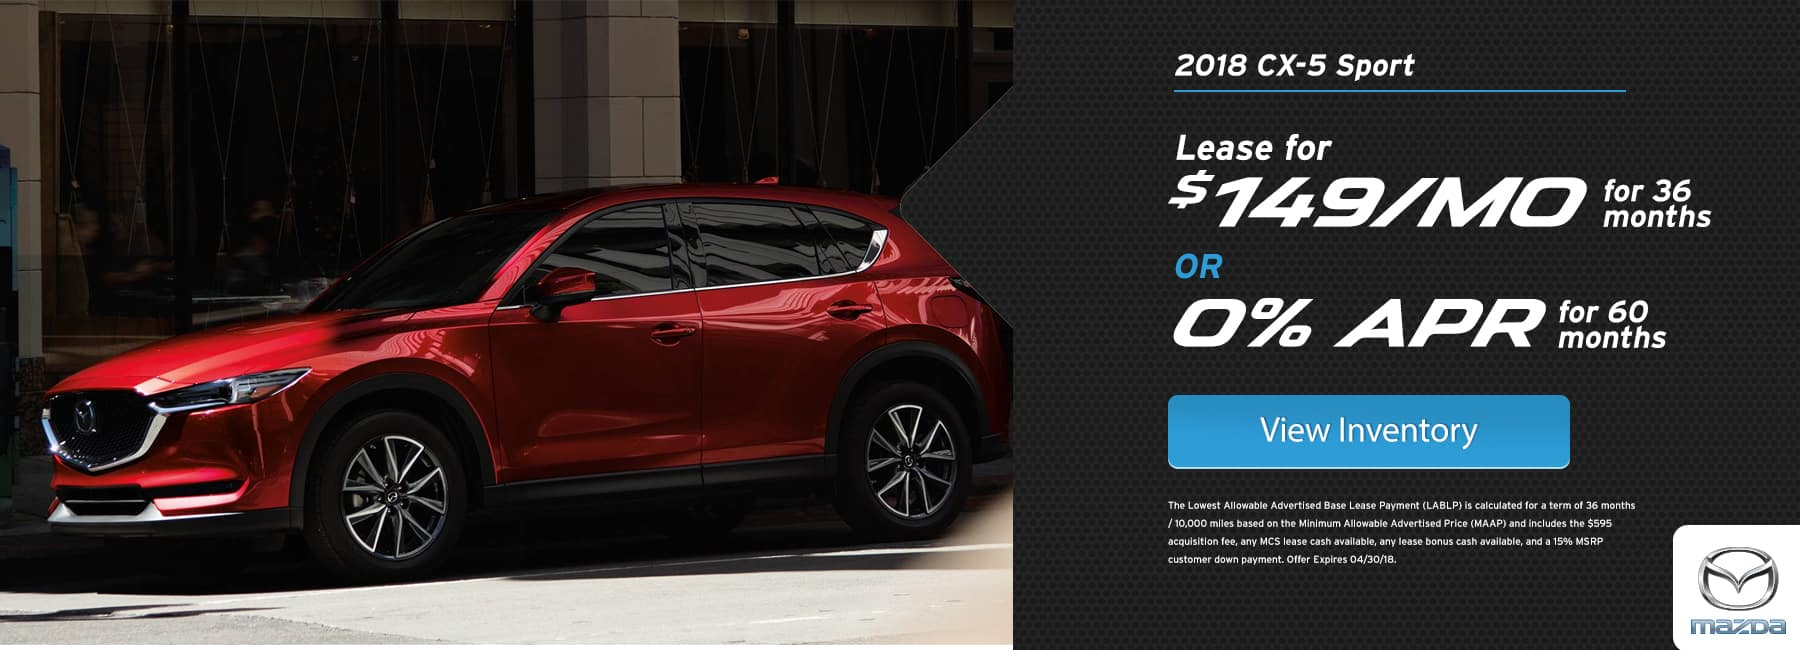 Mazda CX5 April Offer